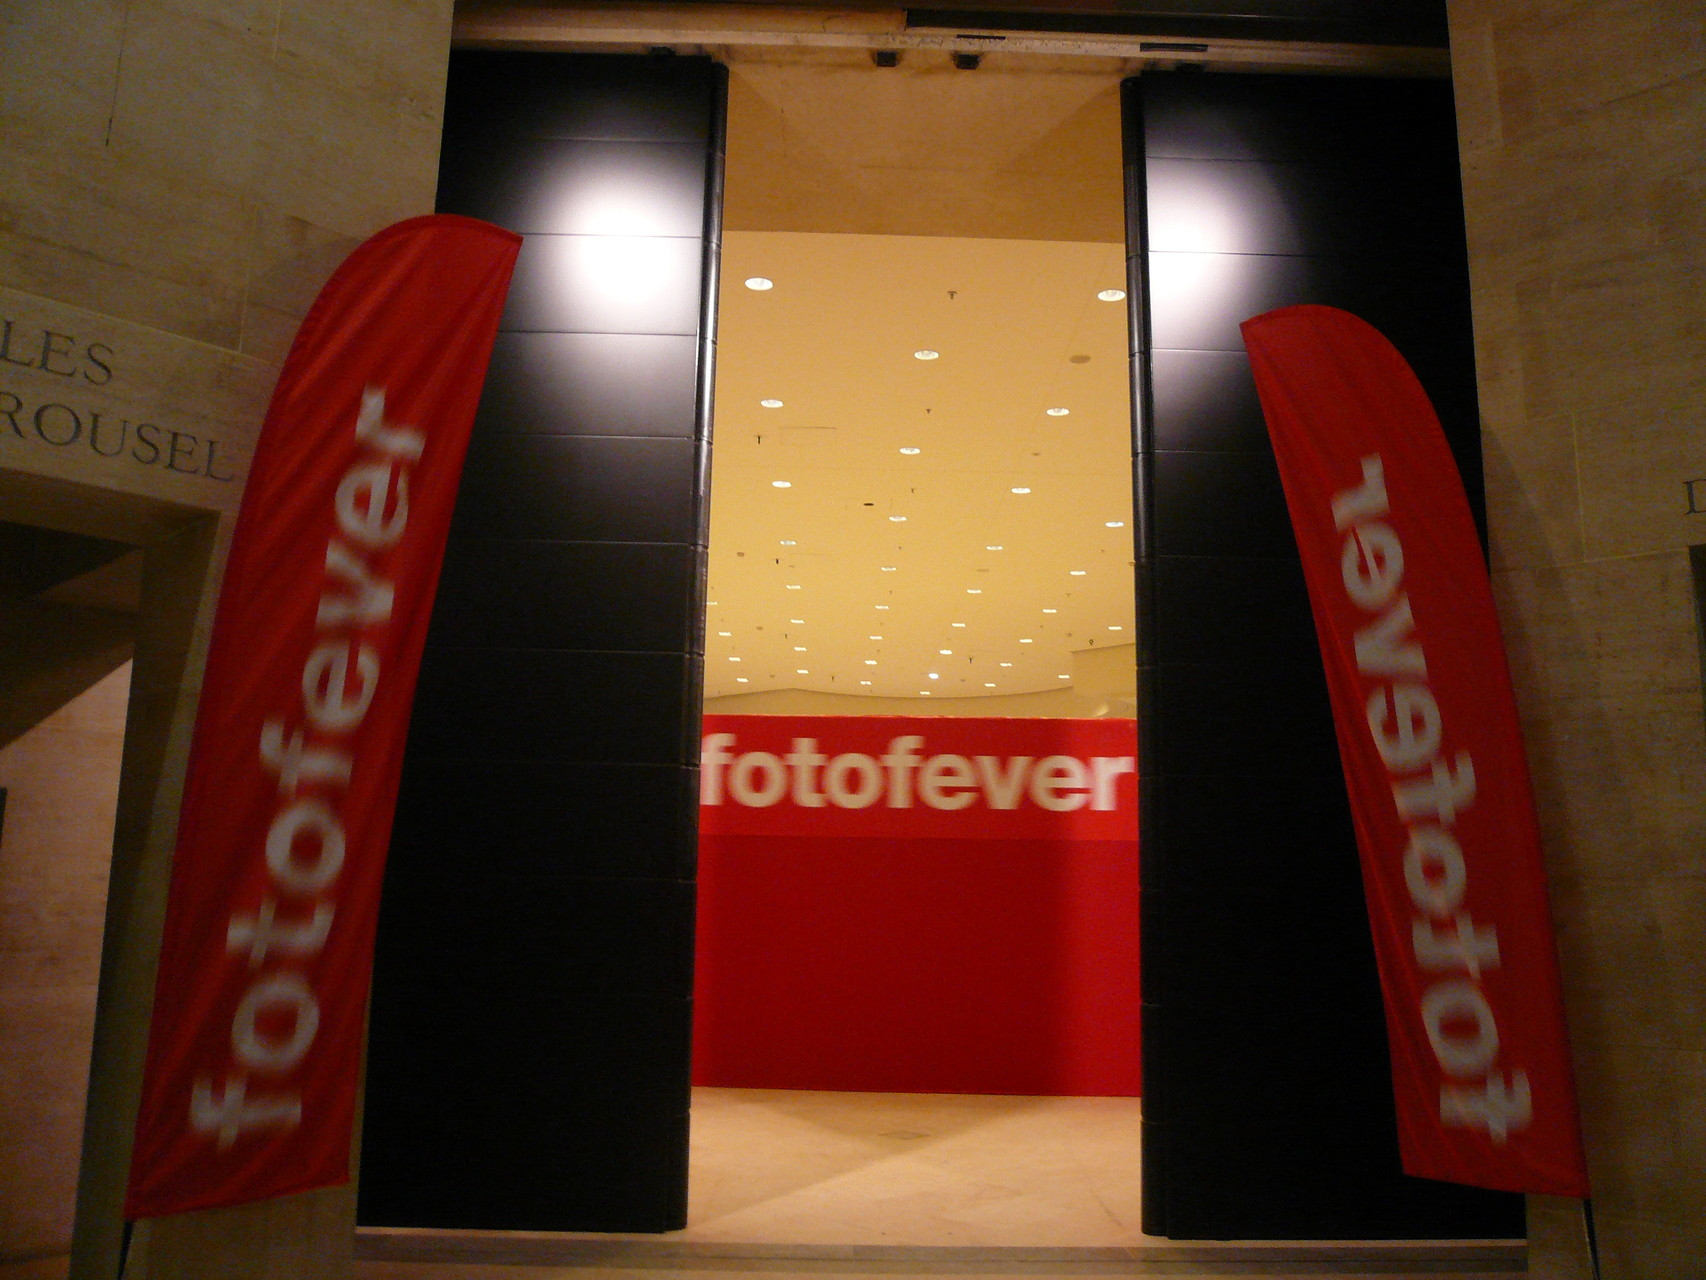 fotofever (PARIS)